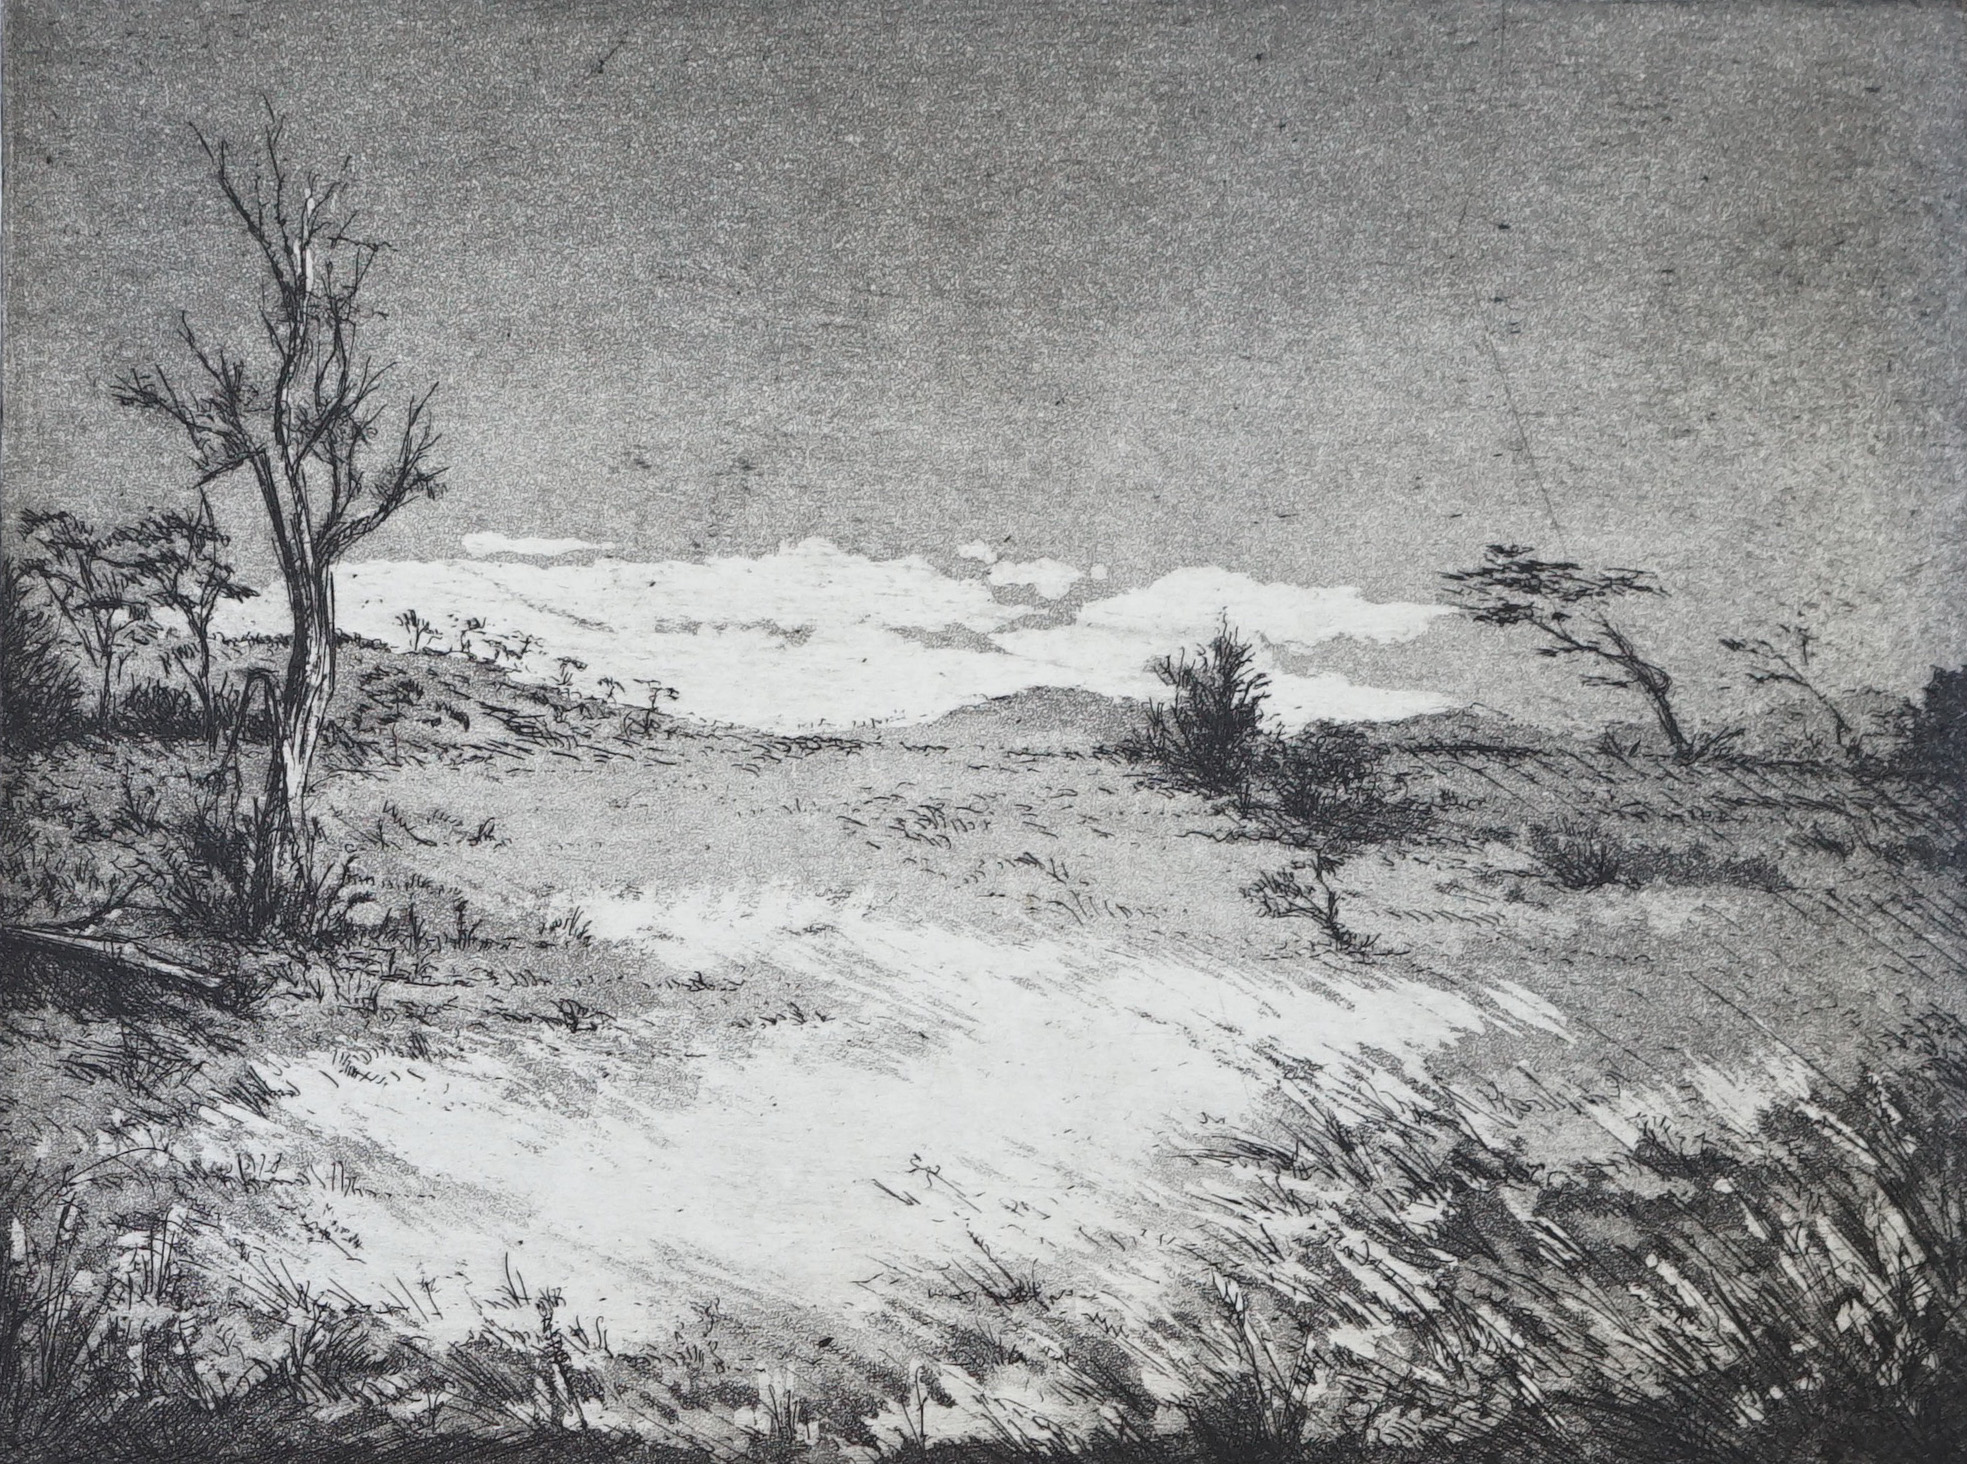 Etching on Hahnemuhle paper